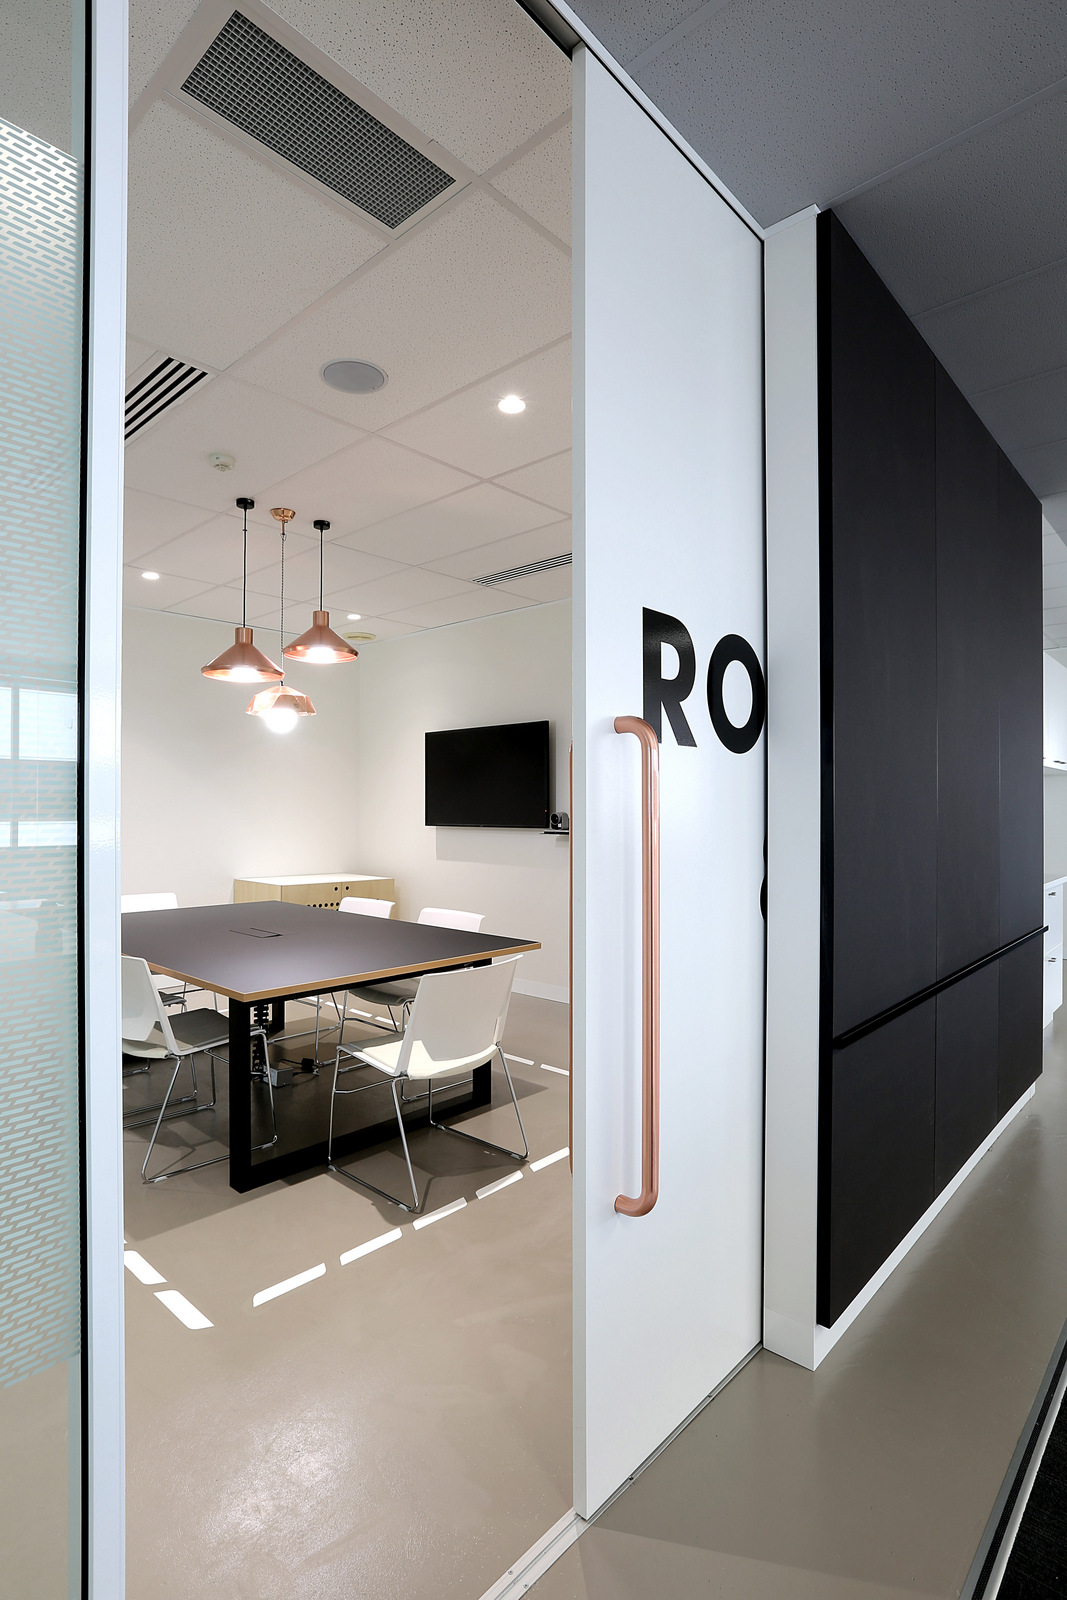 Pacific brands underwear group burwood offices office for Office new design